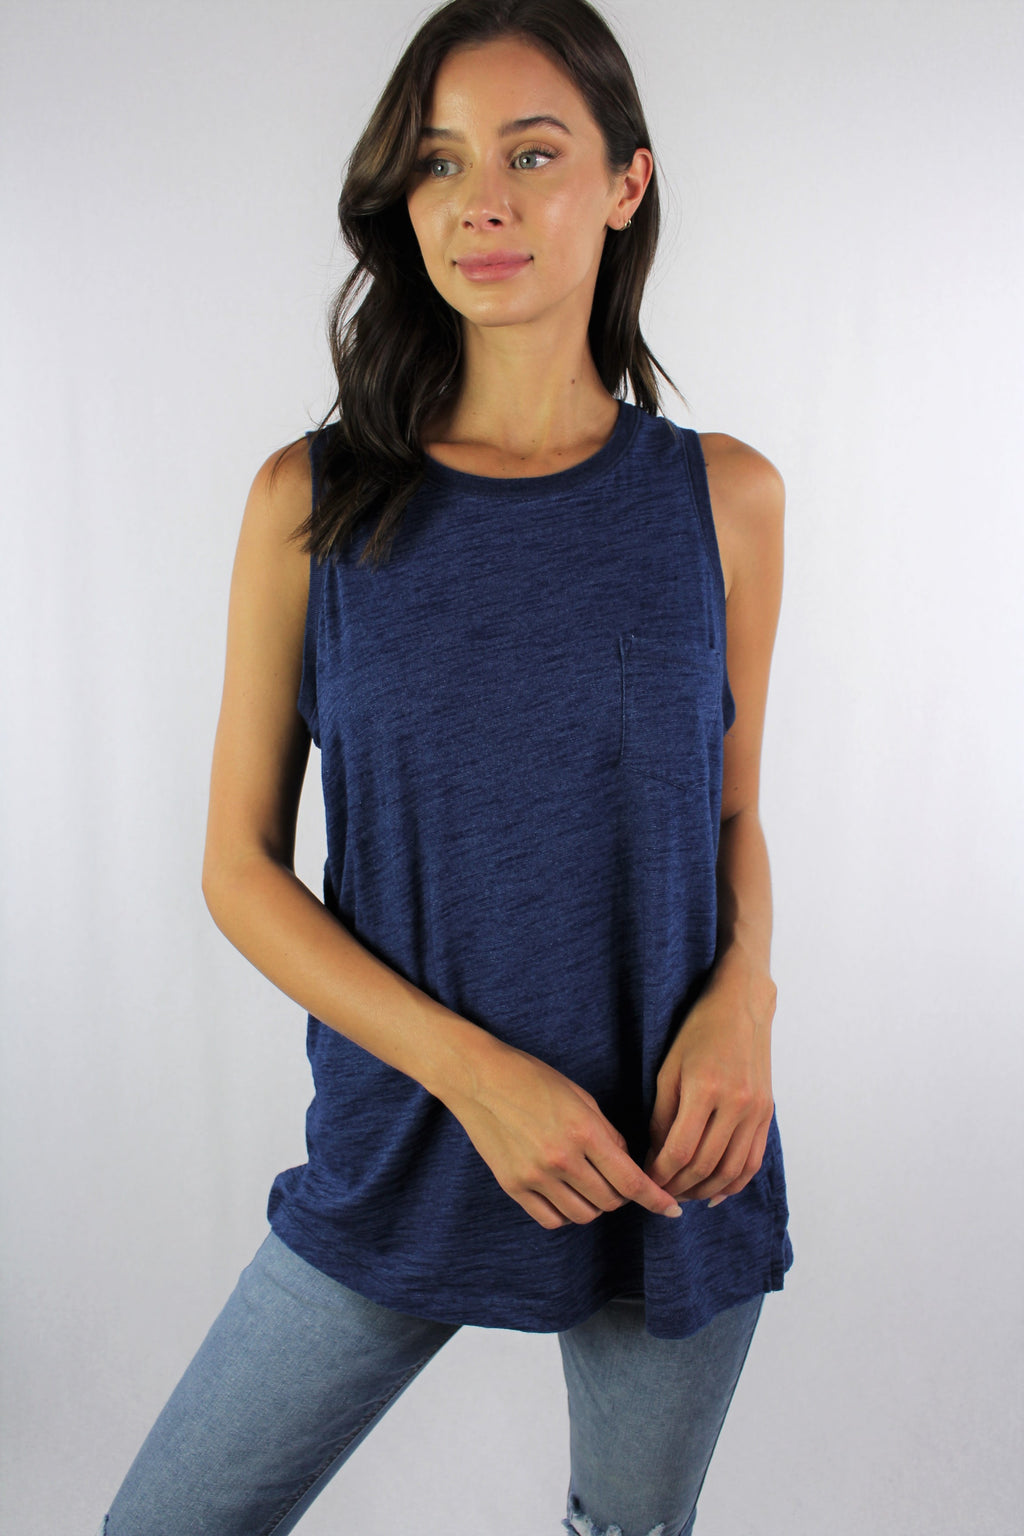 Women's Tank Top with Front Pocket *